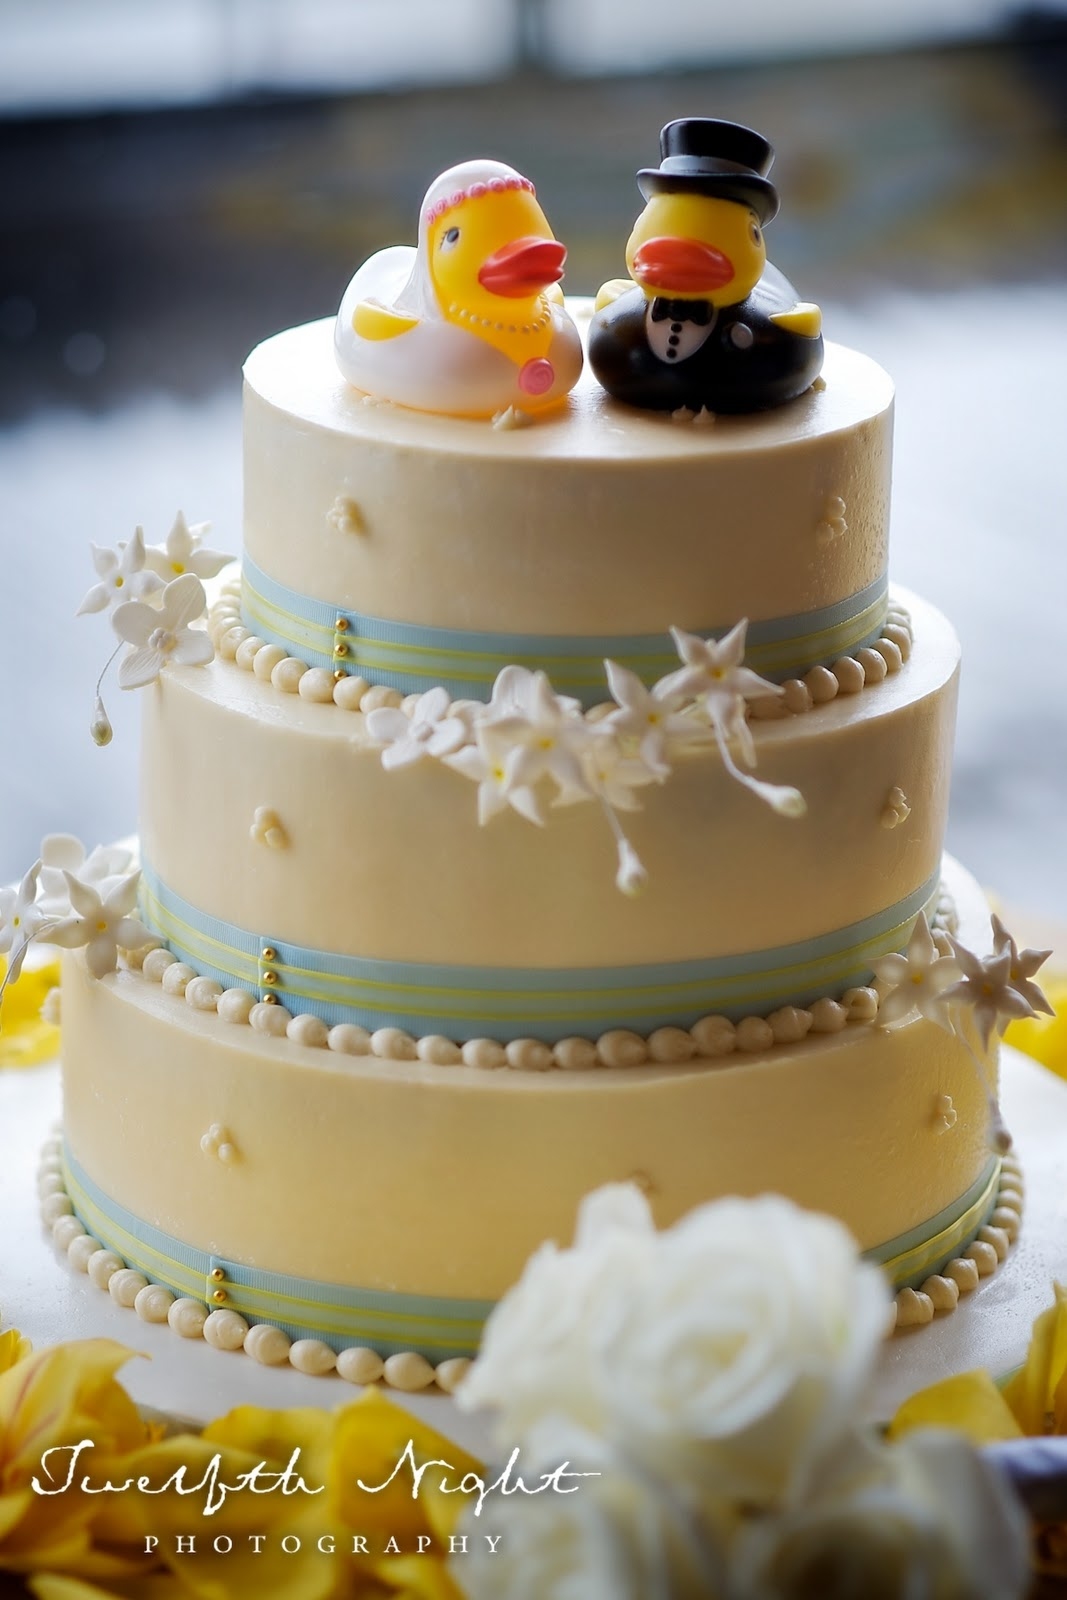 Vegan Wedding Cakes and Twelfth Night Photography  Be Nourished Now Inc Wellness inside and out